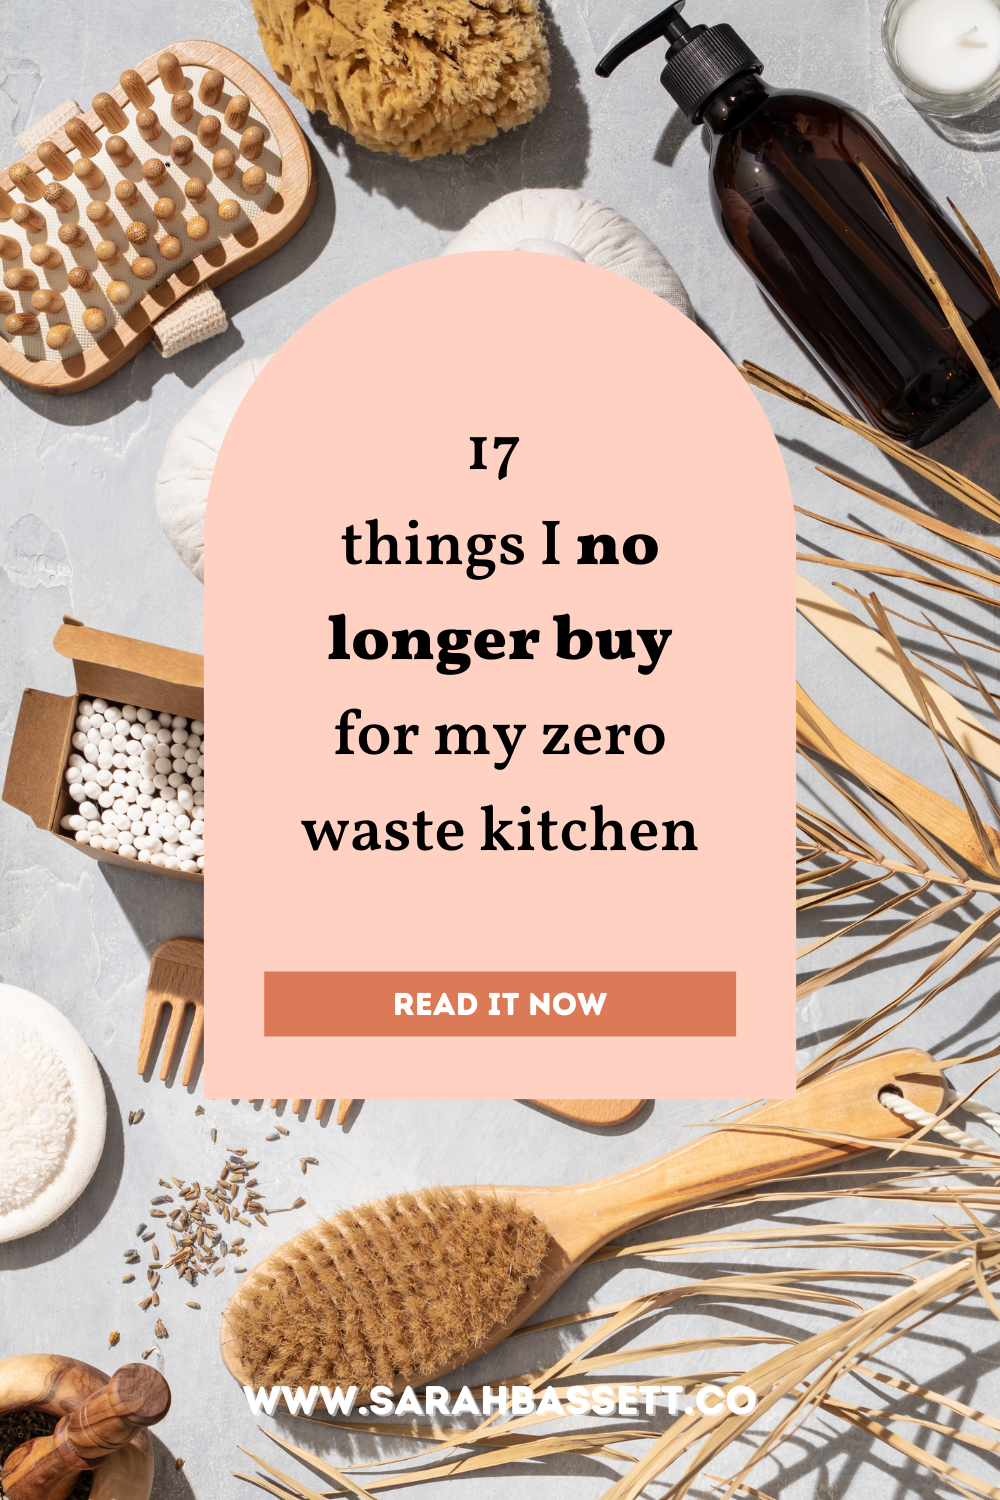 Zero waste kitchen: 17 things I no longer buy for eco-friendly, plastic-free, sustainable living